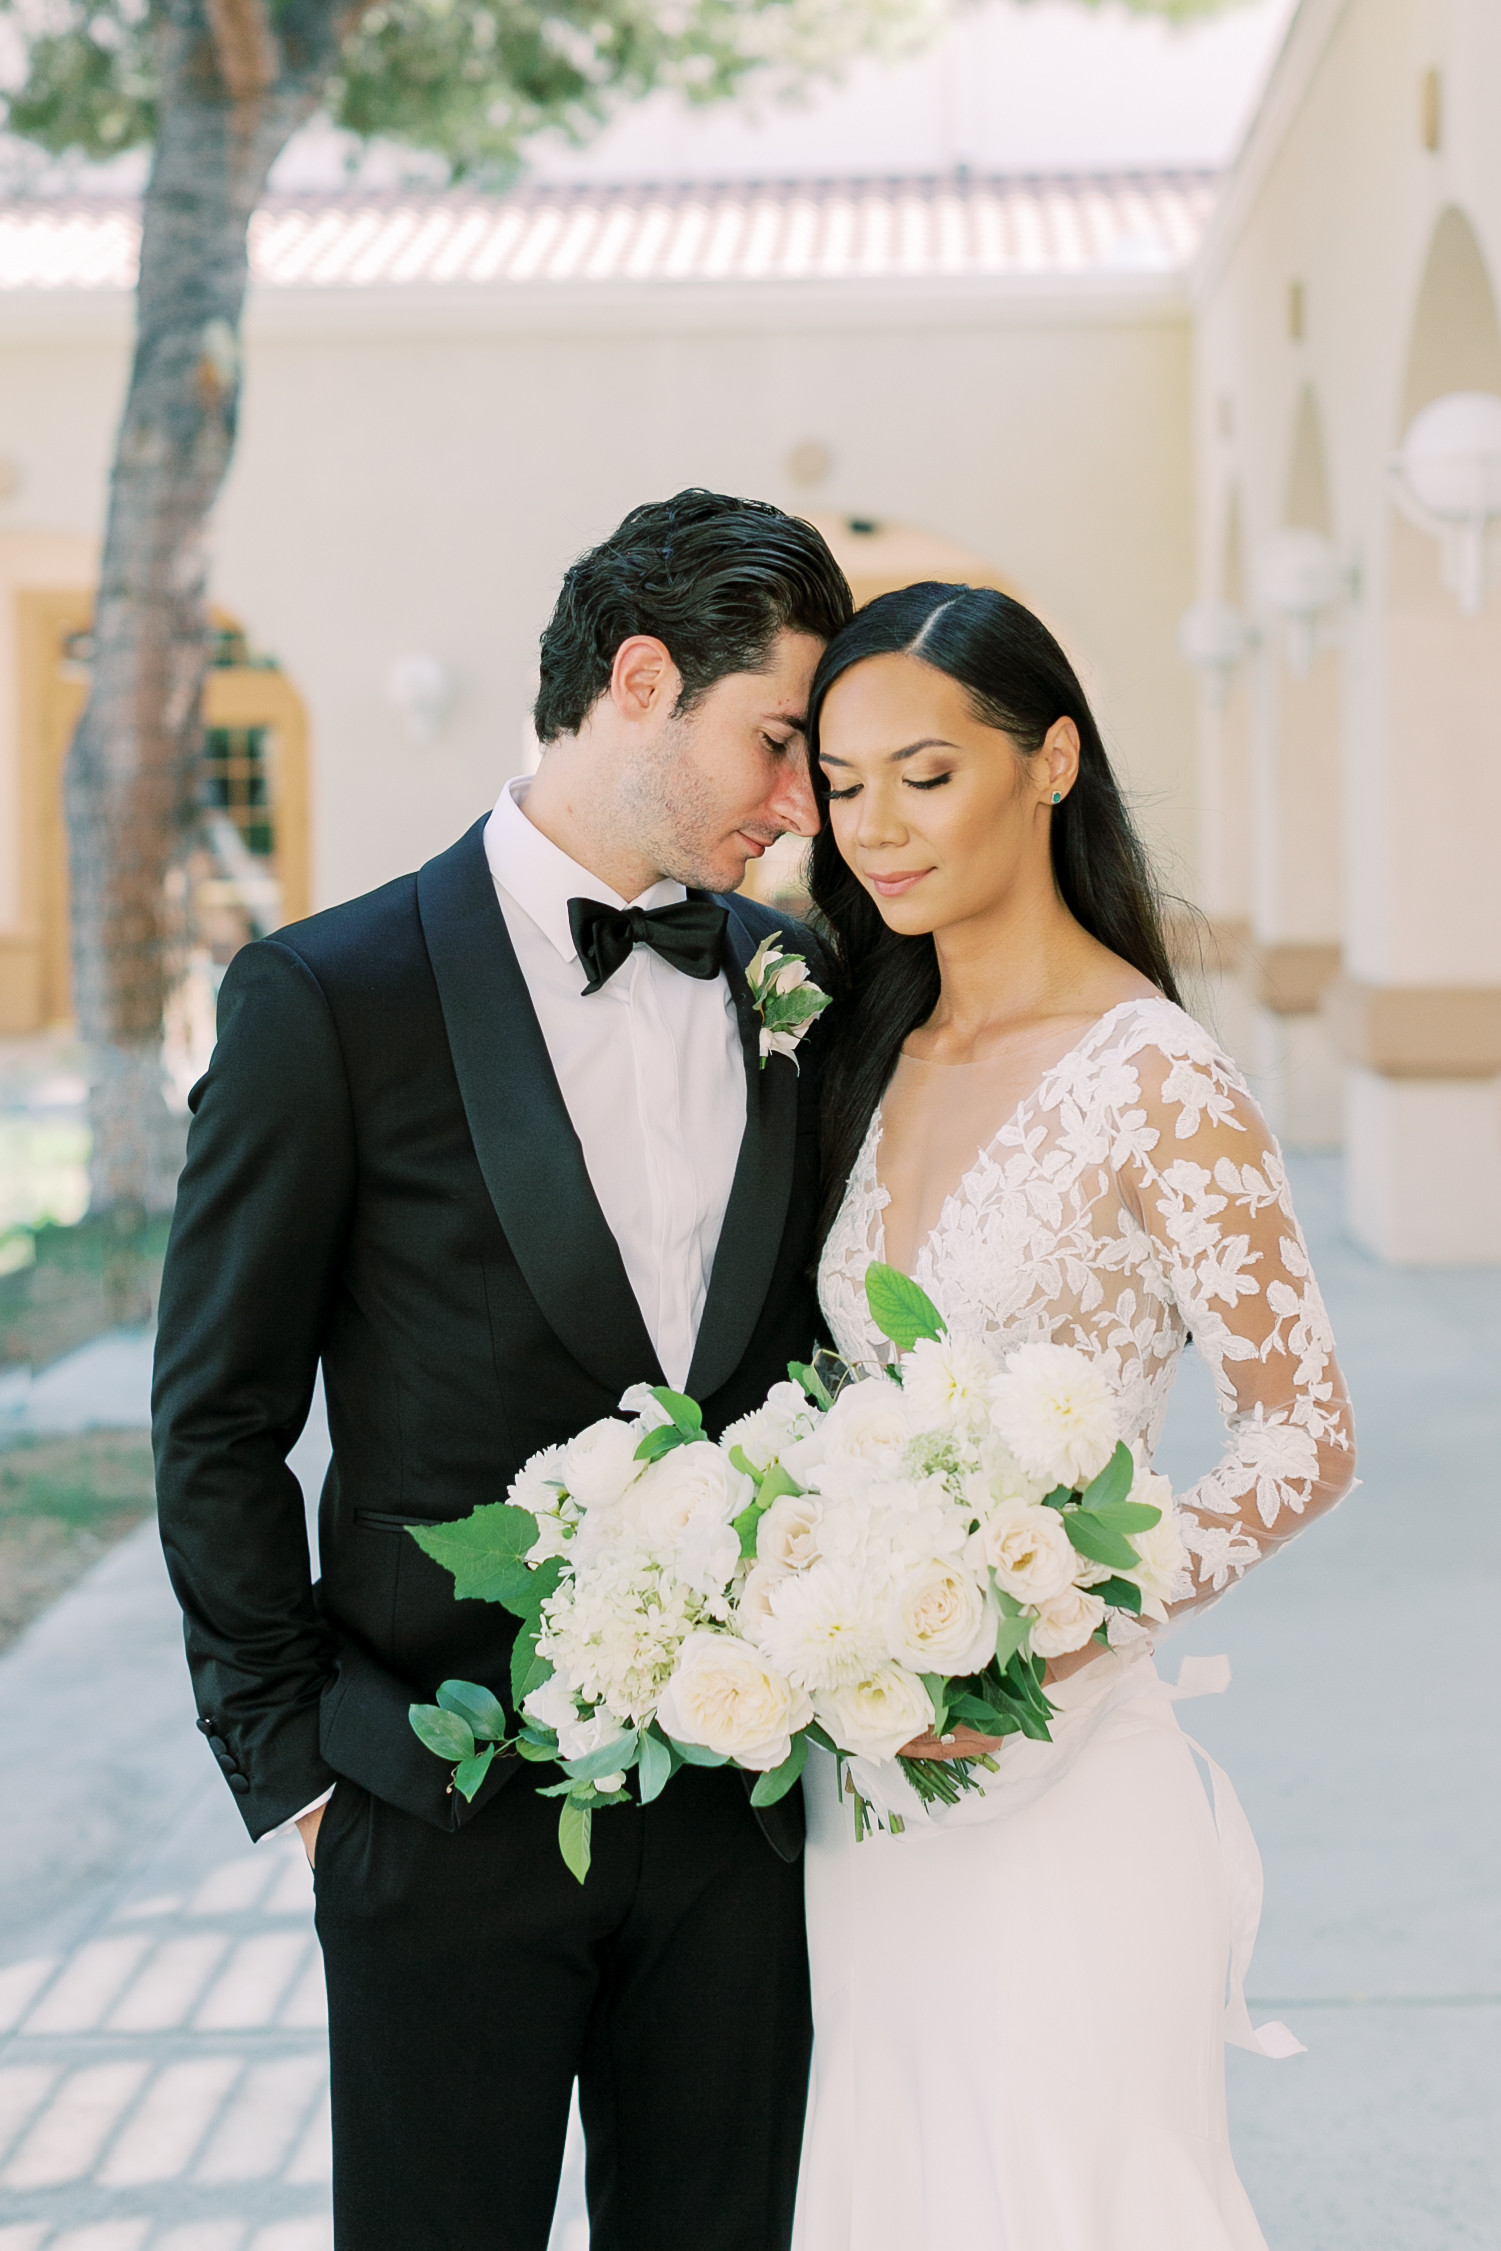 White and ivory bridal bouquet. Photo: Lianna Marie